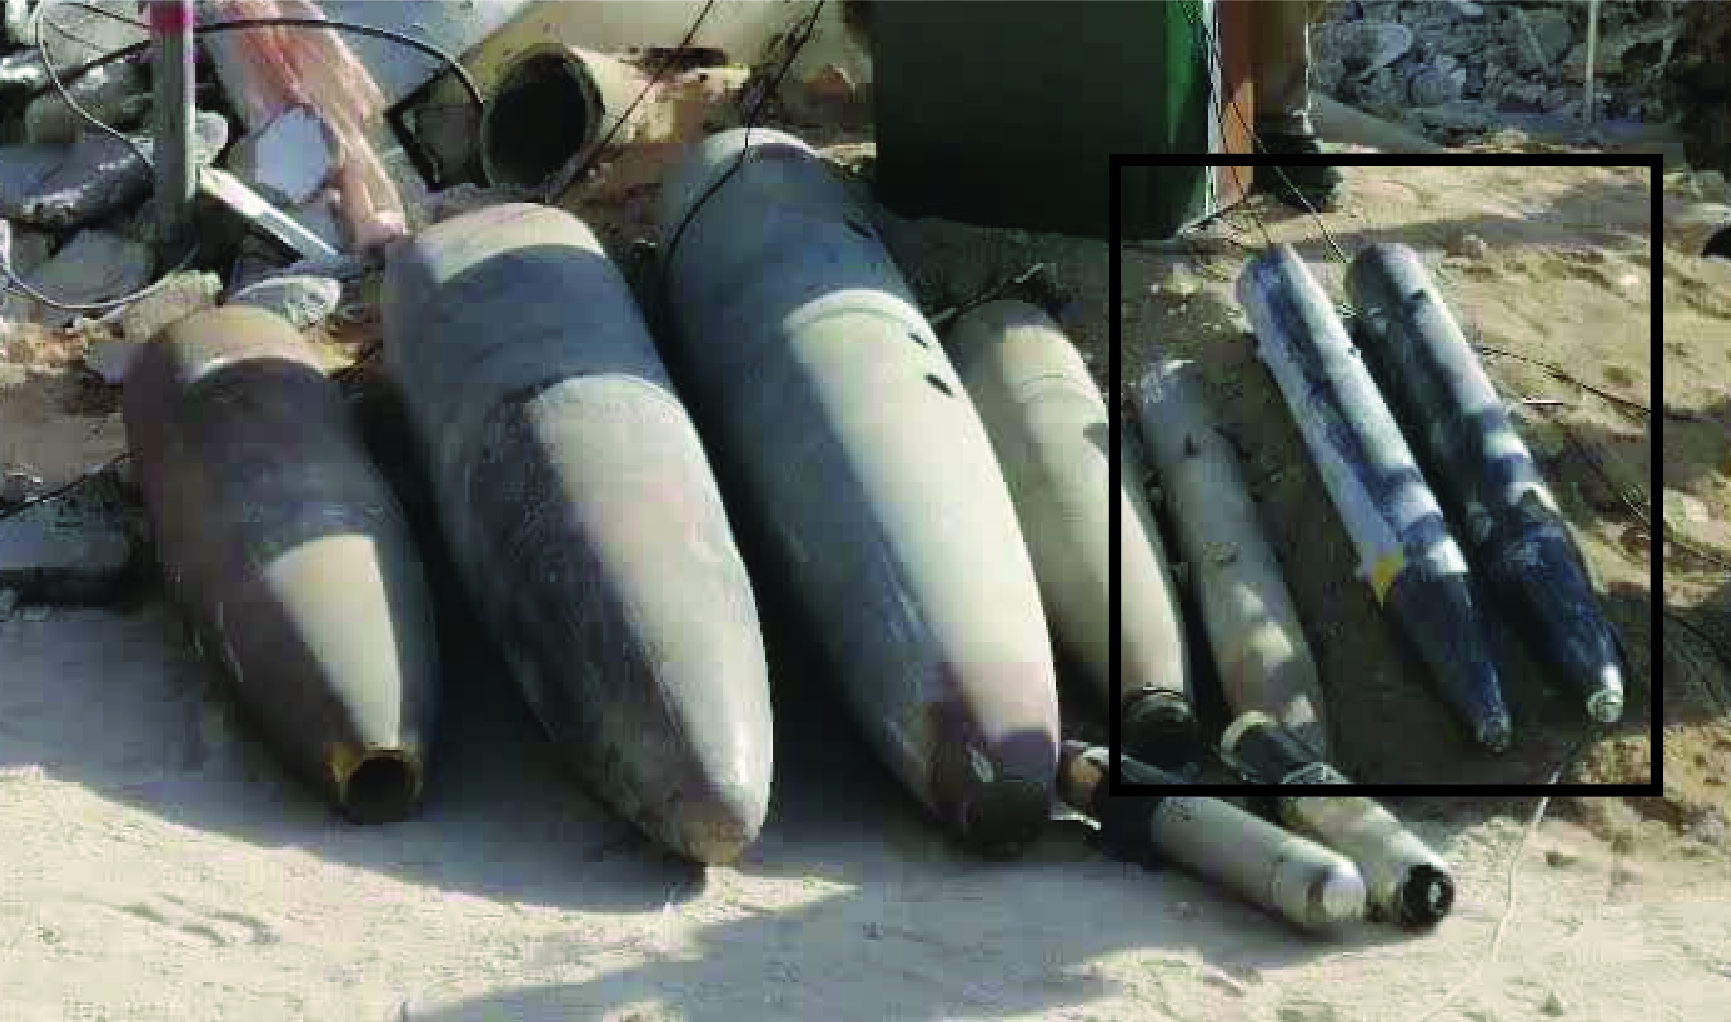 Remains Of Secret Israeli Missile, US-Made Guided Bombs Found In Gaza (Photos)